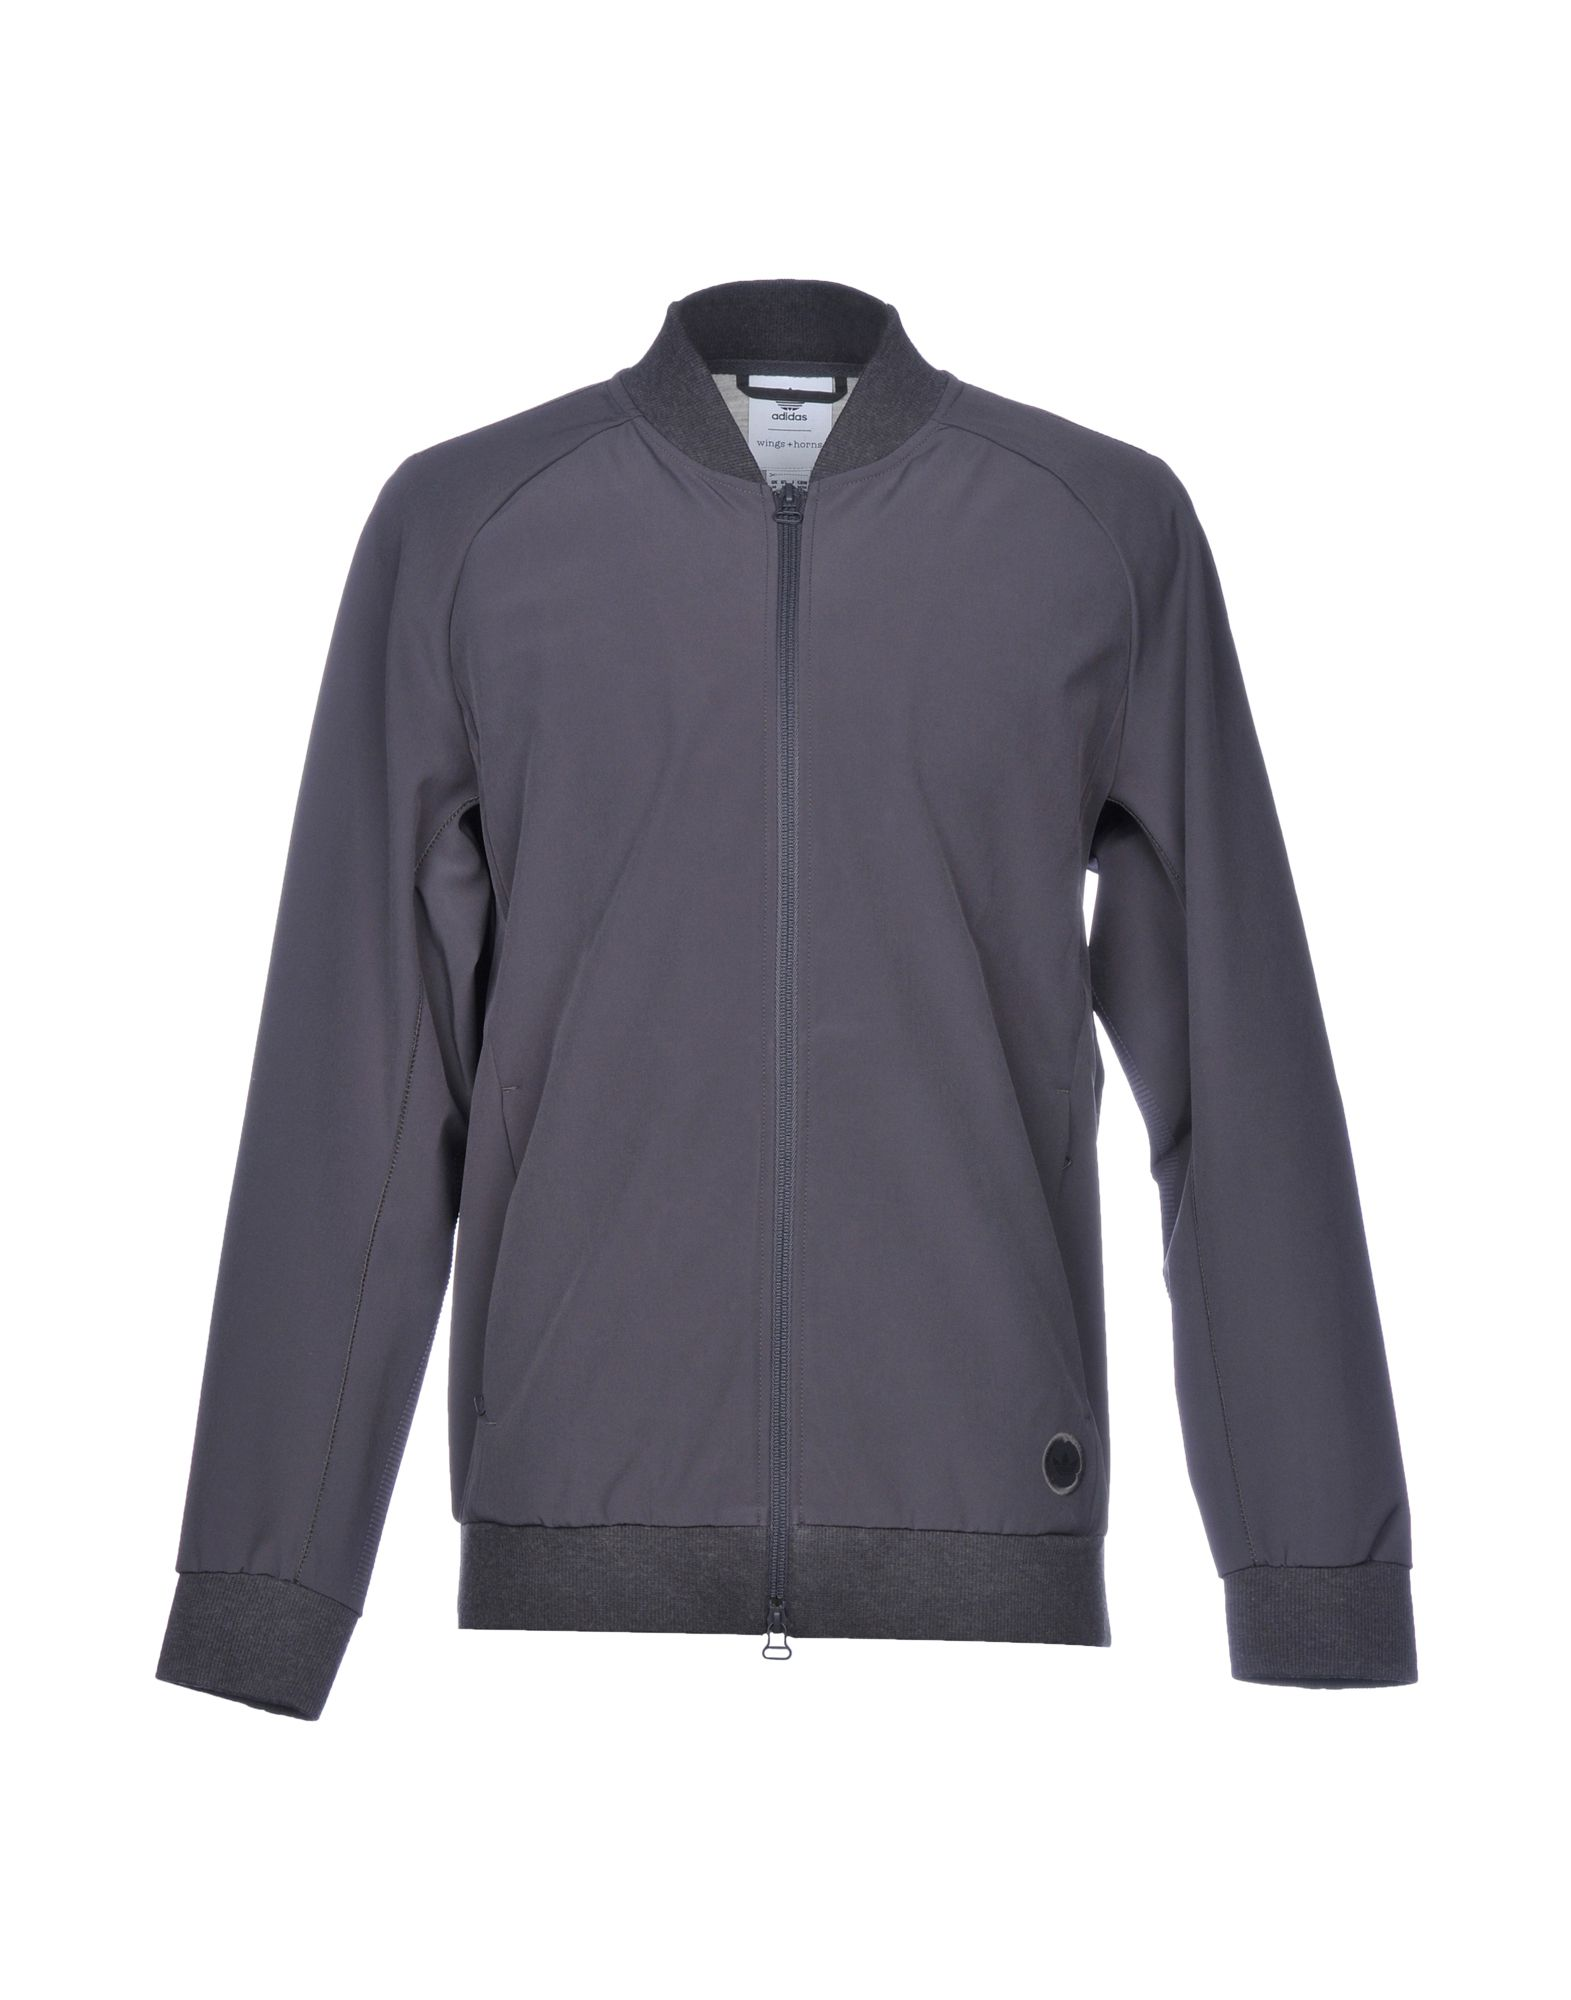 ADIDAS BY WINGS + HORNS Jackets in Lead